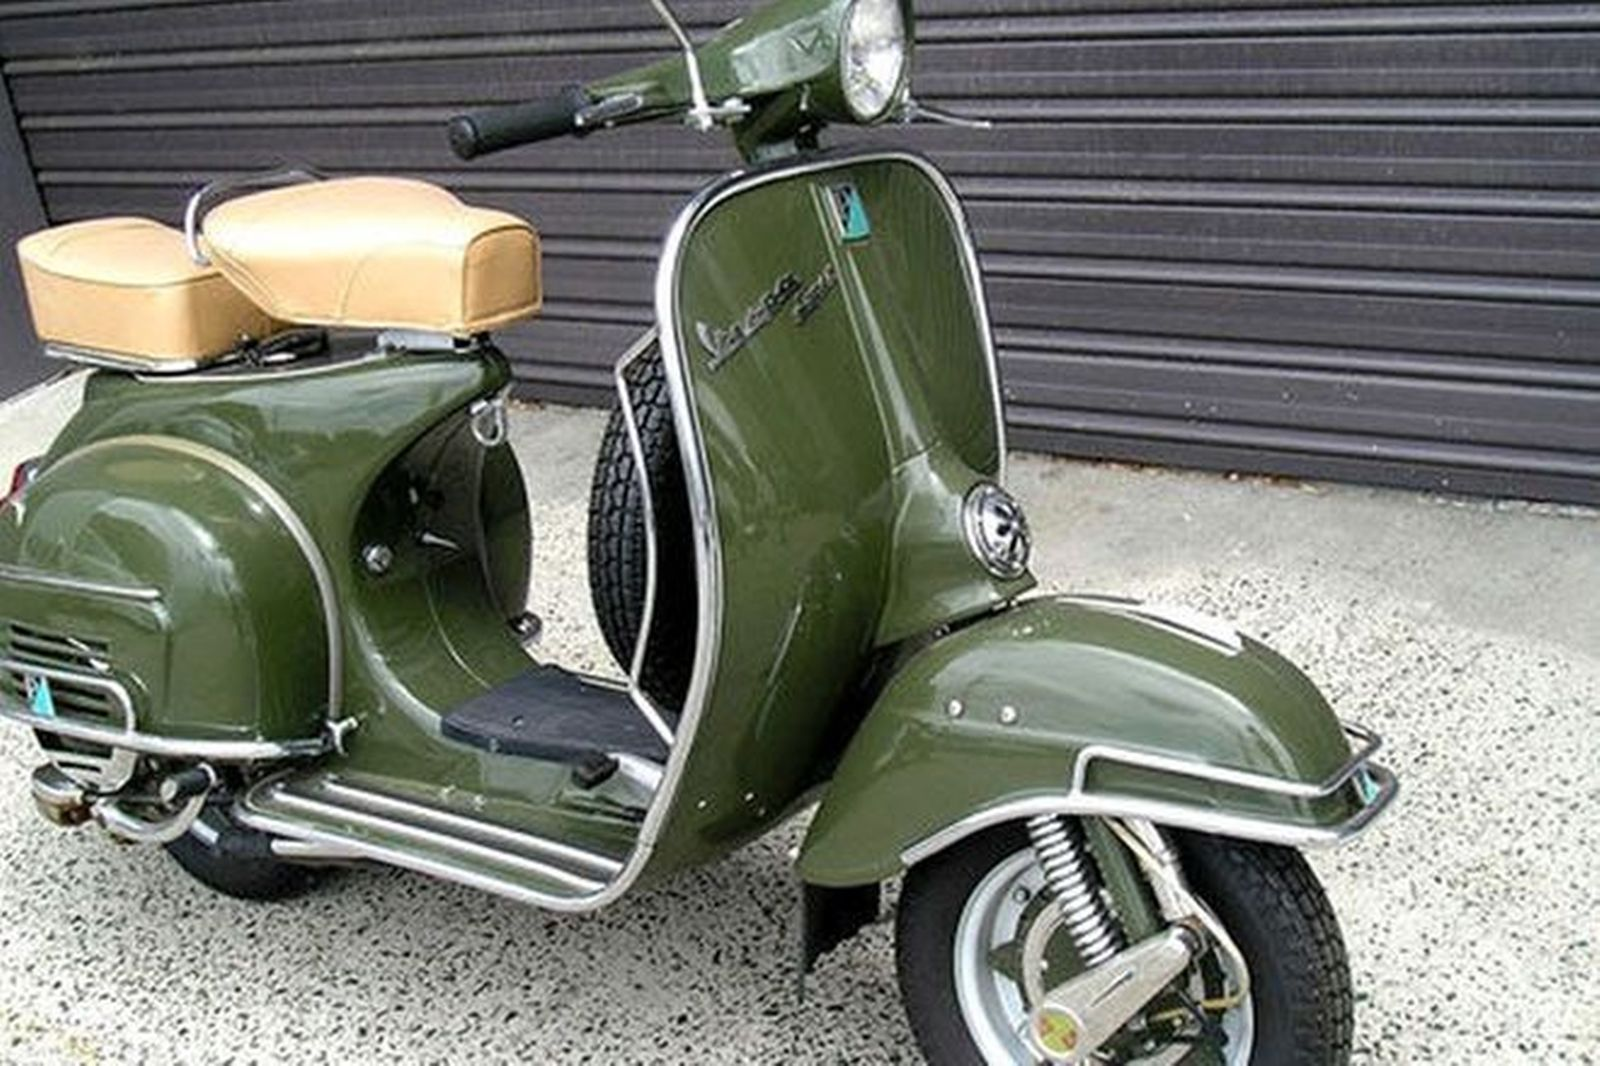 Sold vespa 150 super motorscooter auctions lot 1 shannons for Where can i buy a motor scooter